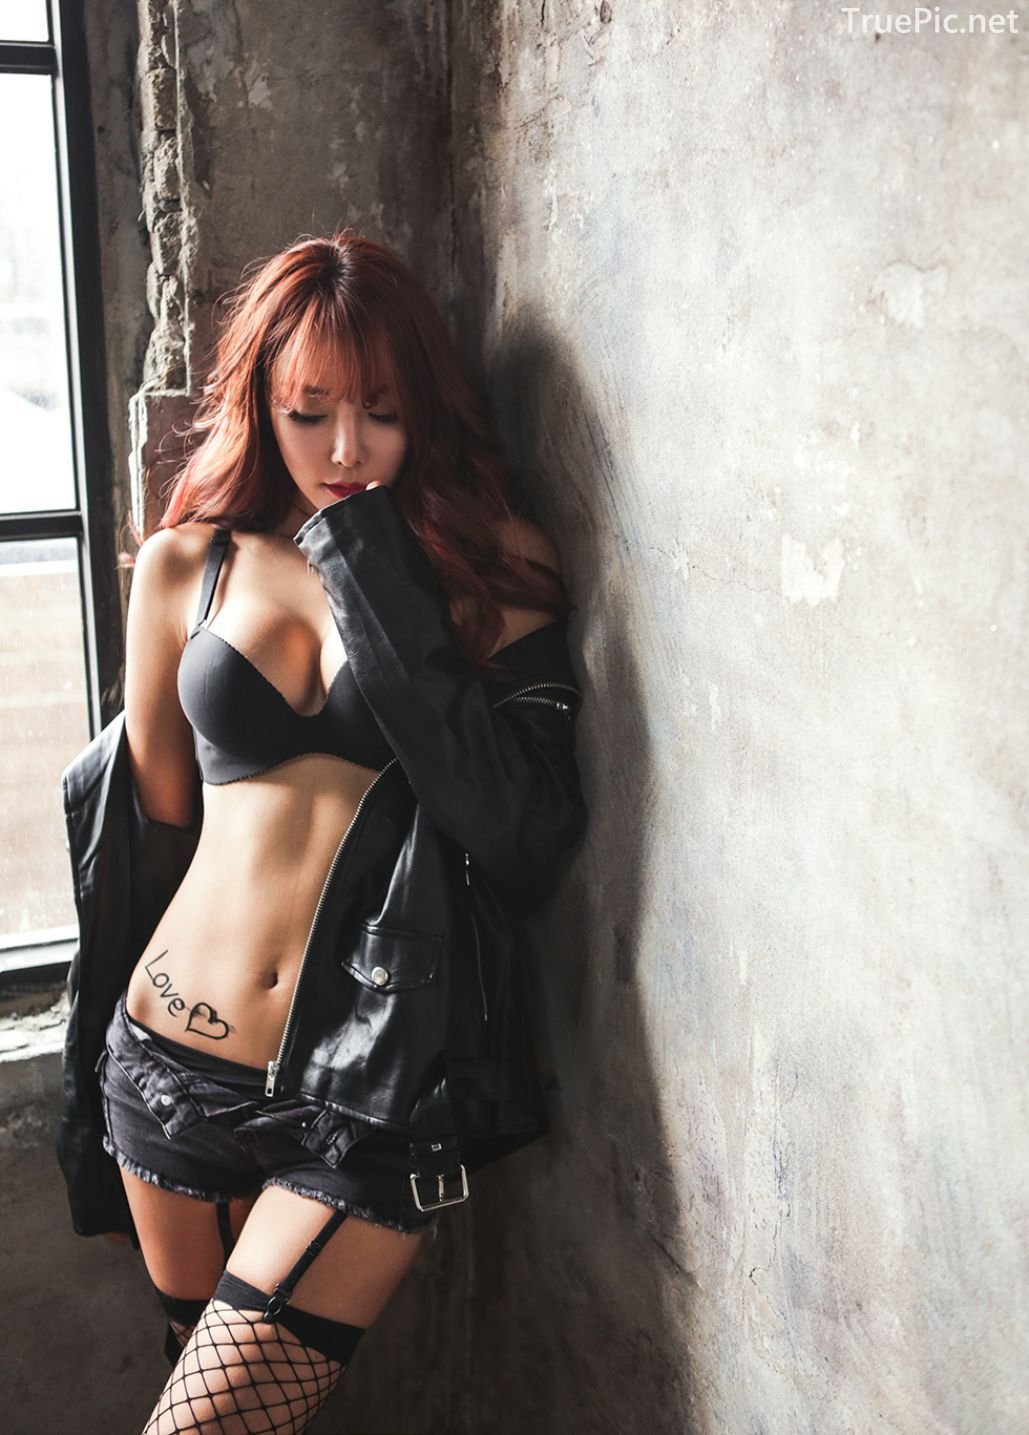 Korean-Lingerie-Fashion-Lee-Da-Hee-model-Tell-Me-What-You-Want-To-Do-TruePic.net- Picture 2